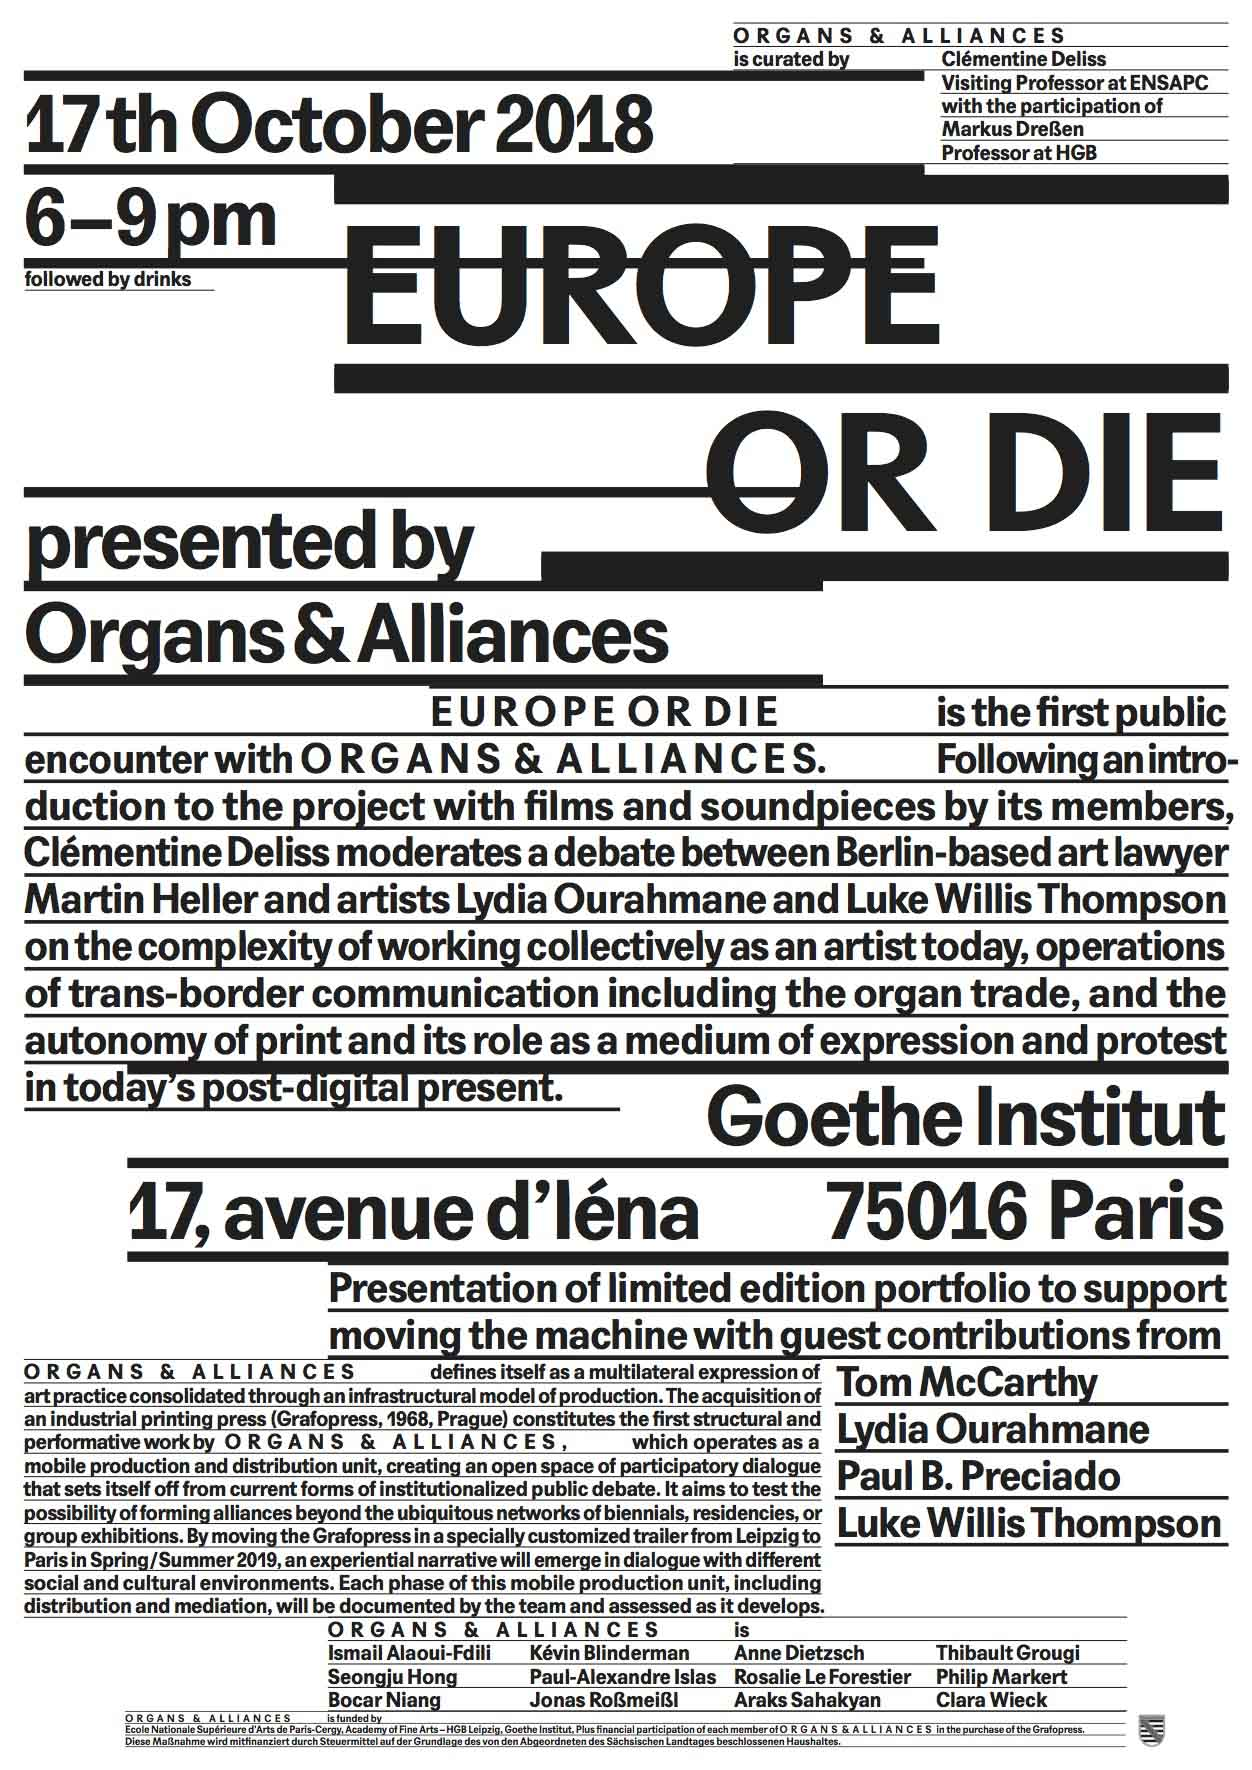 Organs&Alliances-europe-or-die-ENSAPC